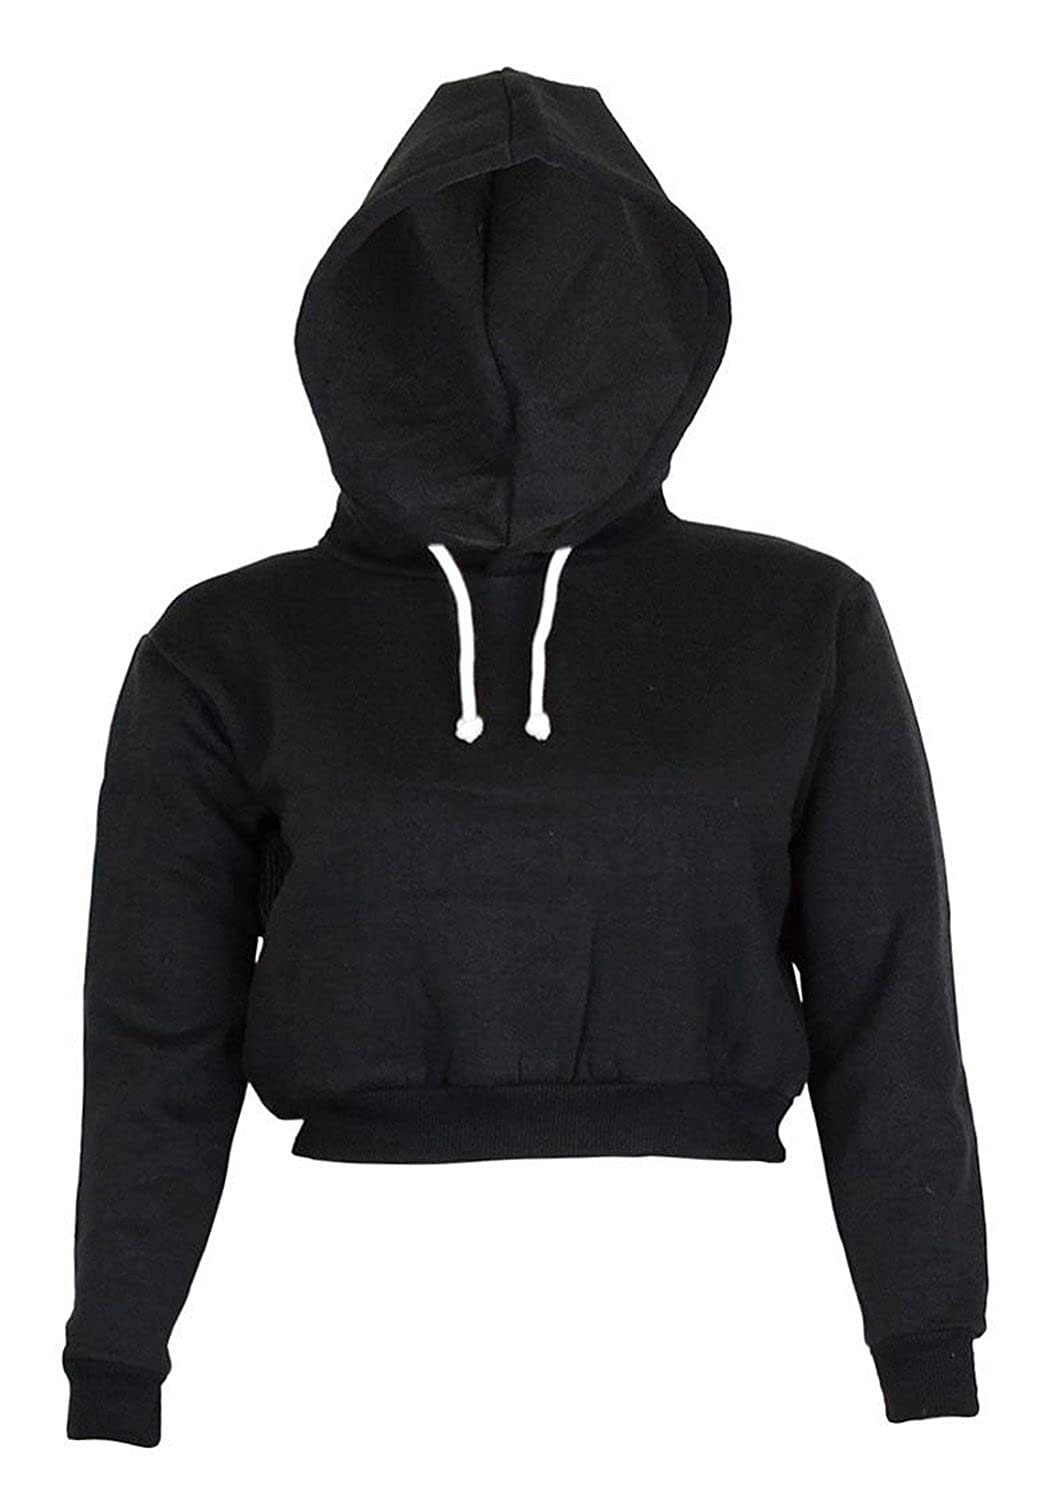 Noroze Womens Plain Crop Top Hoodies at Amazon Women's Clothing store: